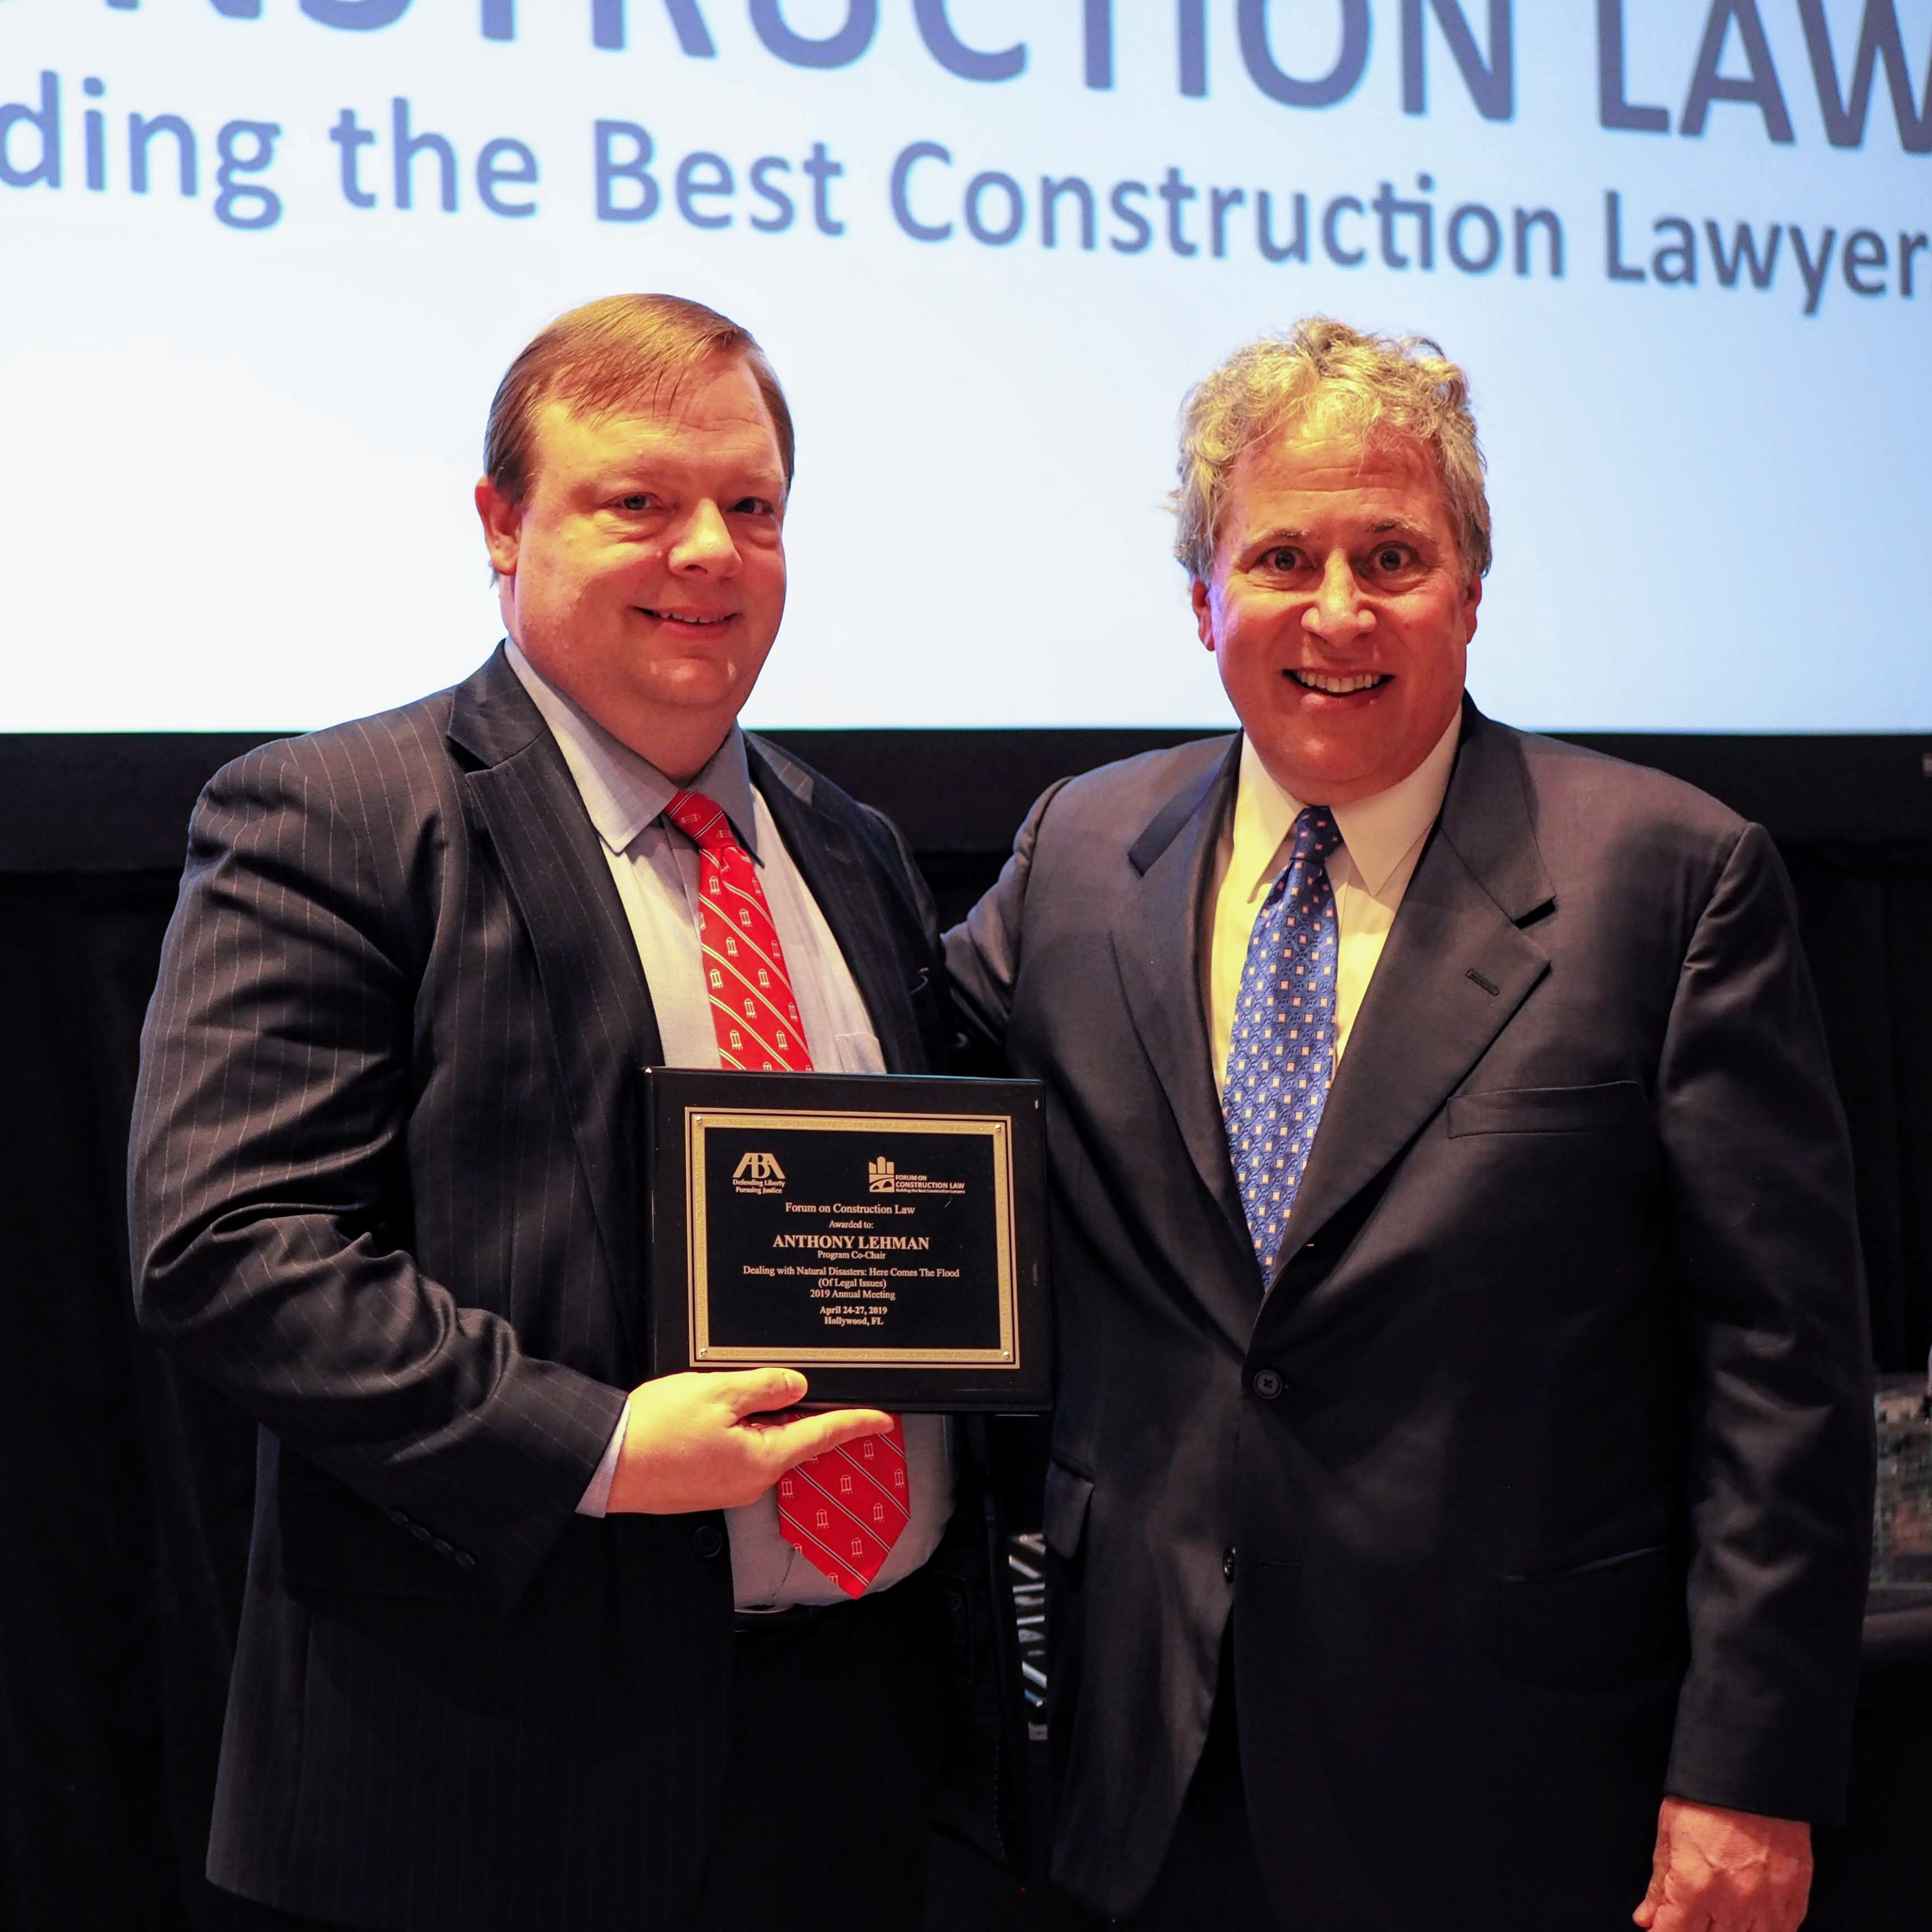 HPW Partner Tony Lehman Co-Chairs ABA Forum on Construction Law Annual Meeting